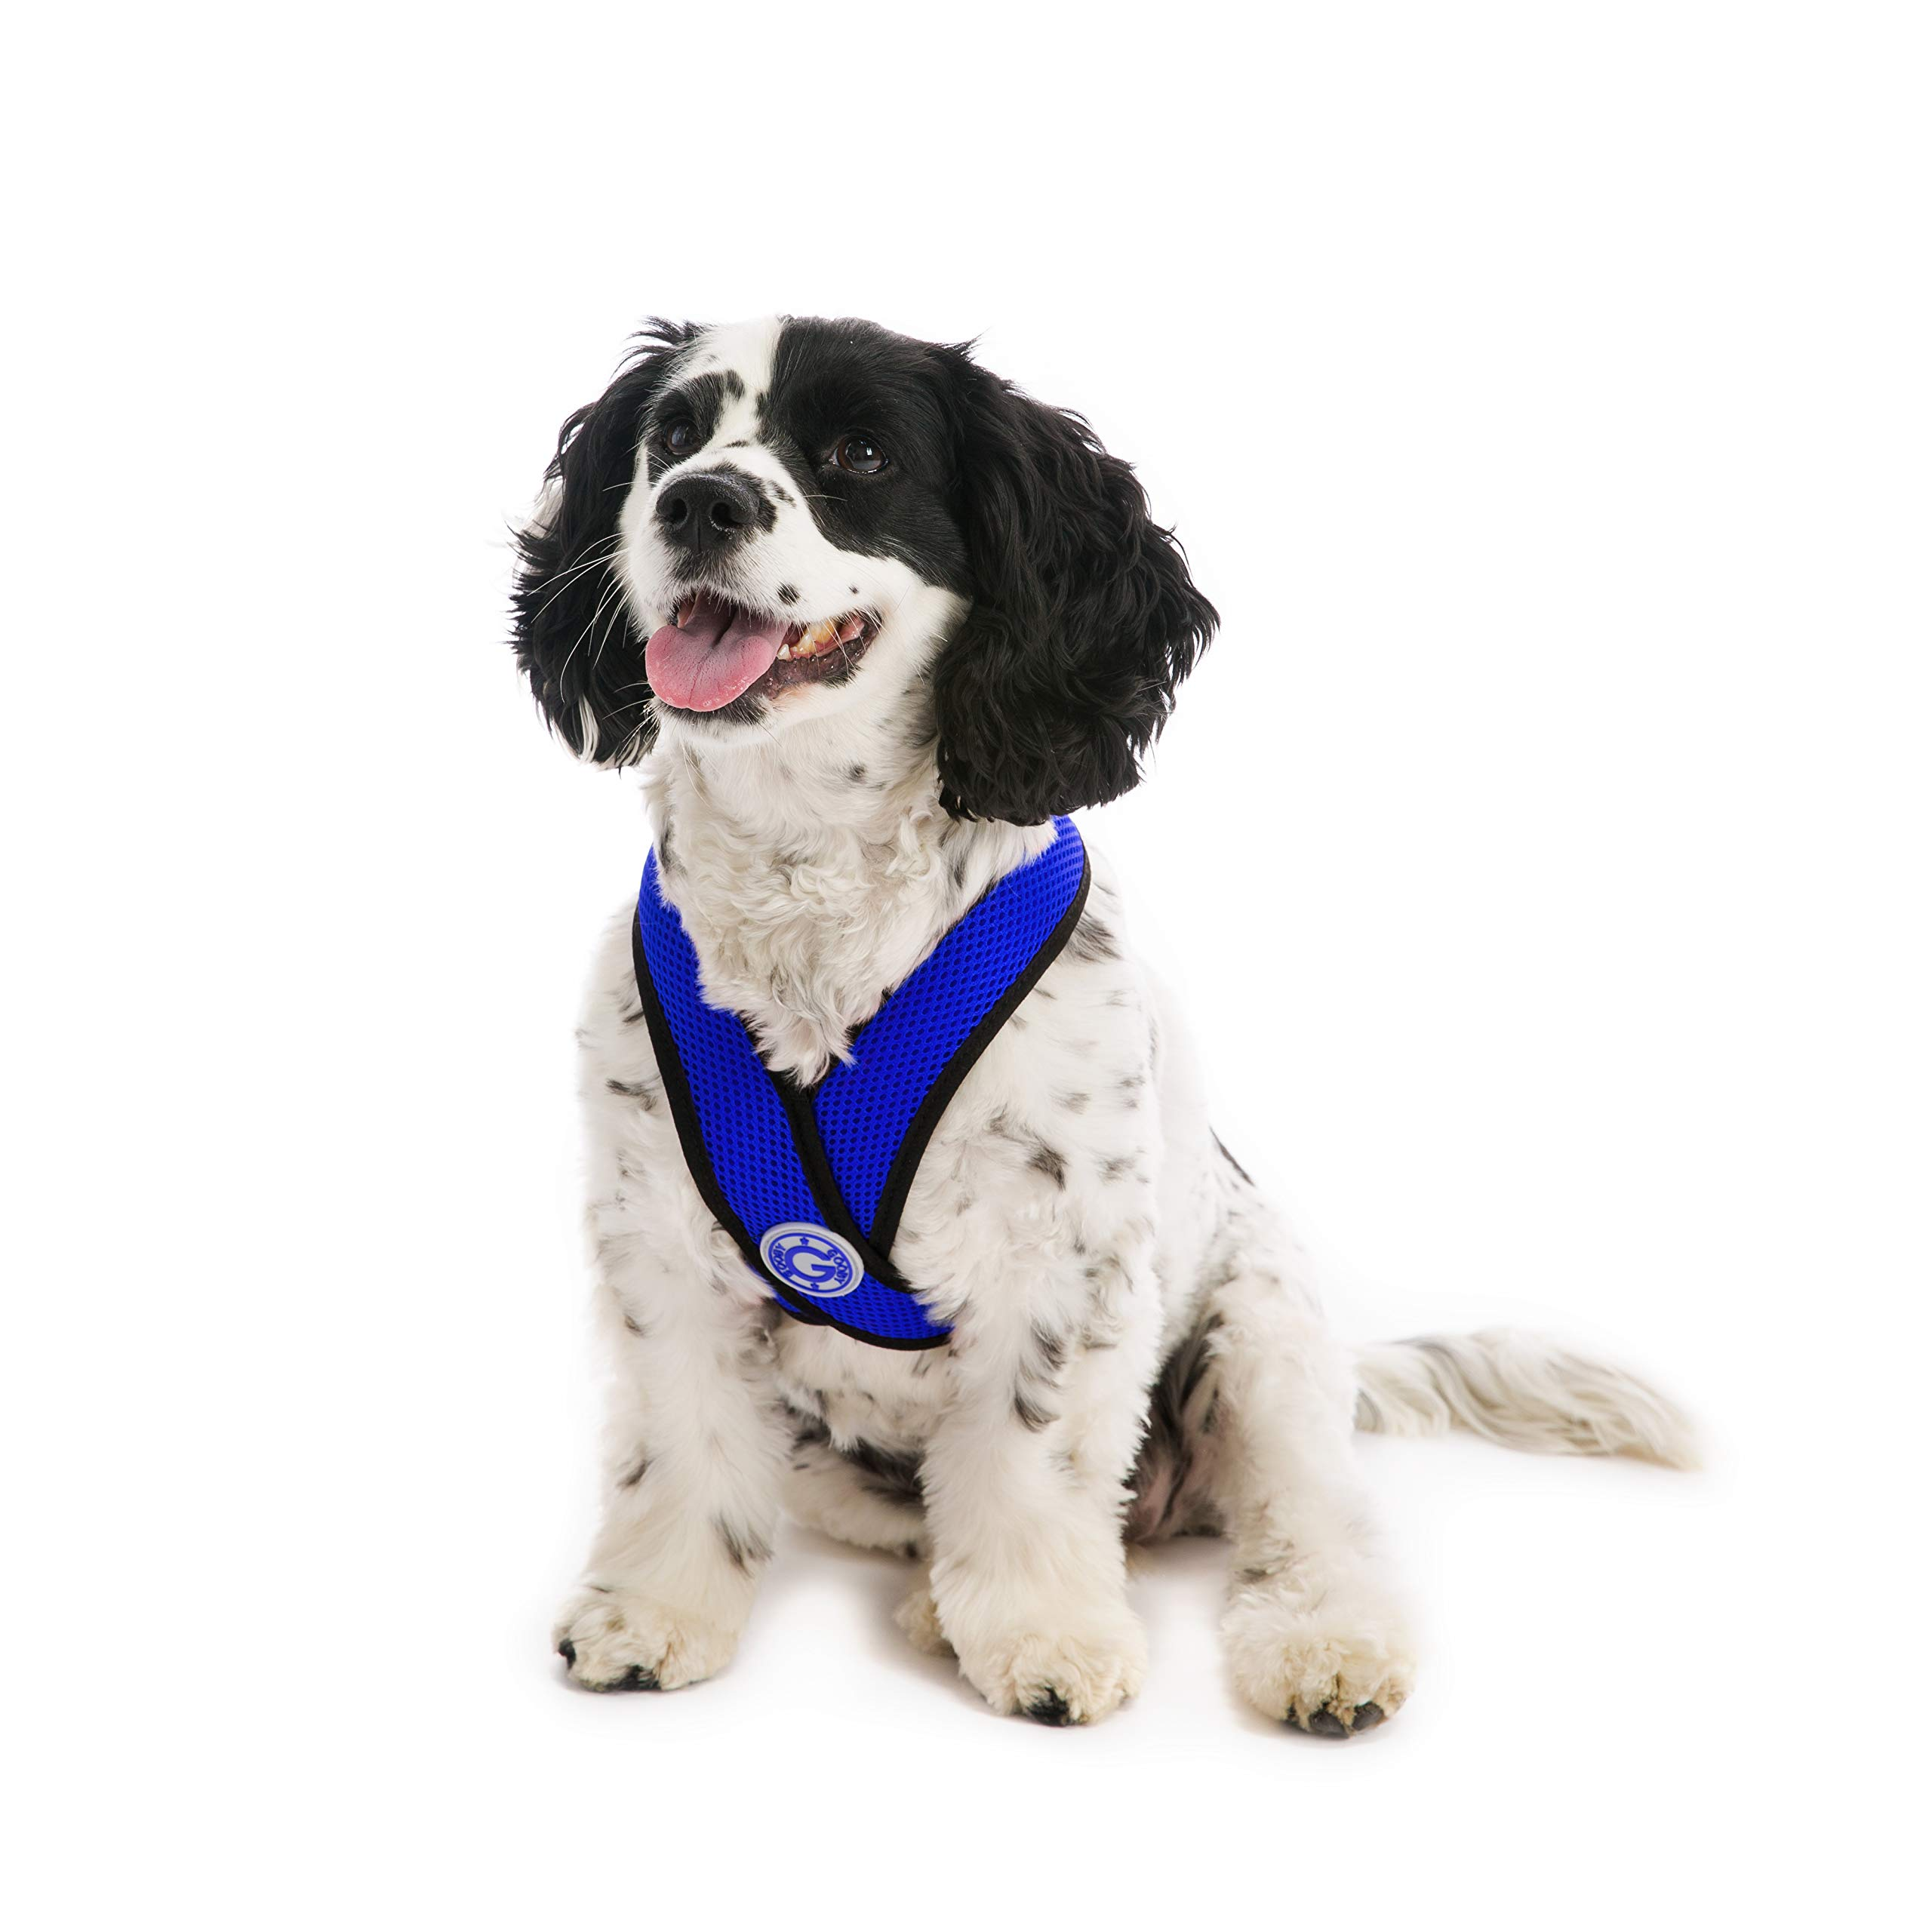 Gooby - Comfort X Head-in Harness, Small Dog Harness with Patented Choke Free X Frame